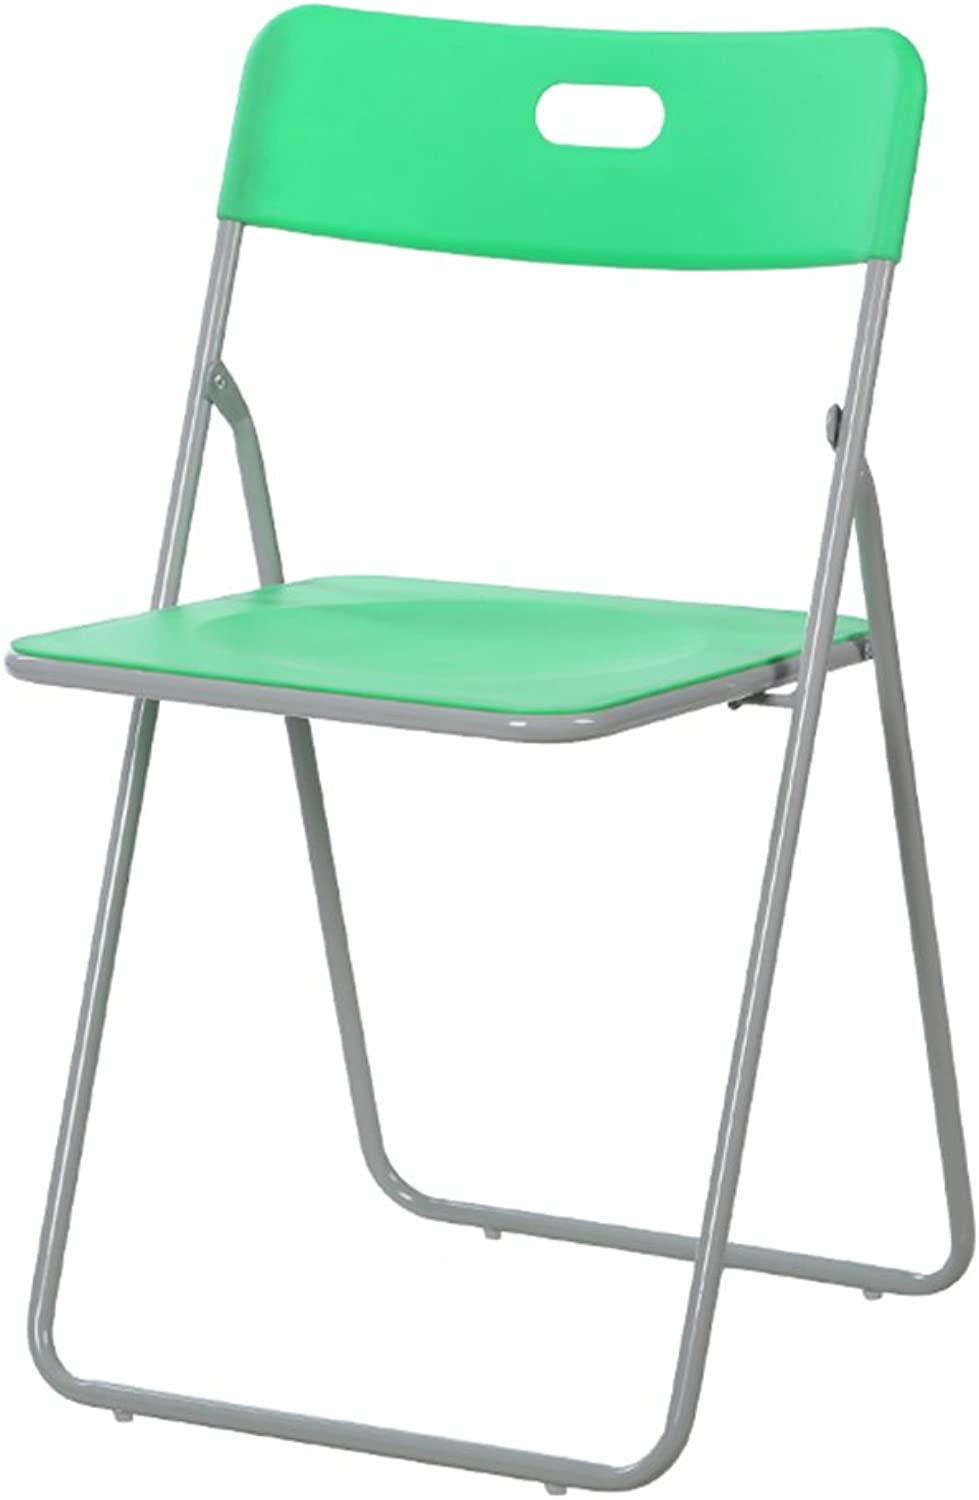 Plastic Folding Chair Home Portable Chair Simple Dining Chair Office Conference Chair Load-Bearing 150kg (pre-Sale Models) (color   Green)